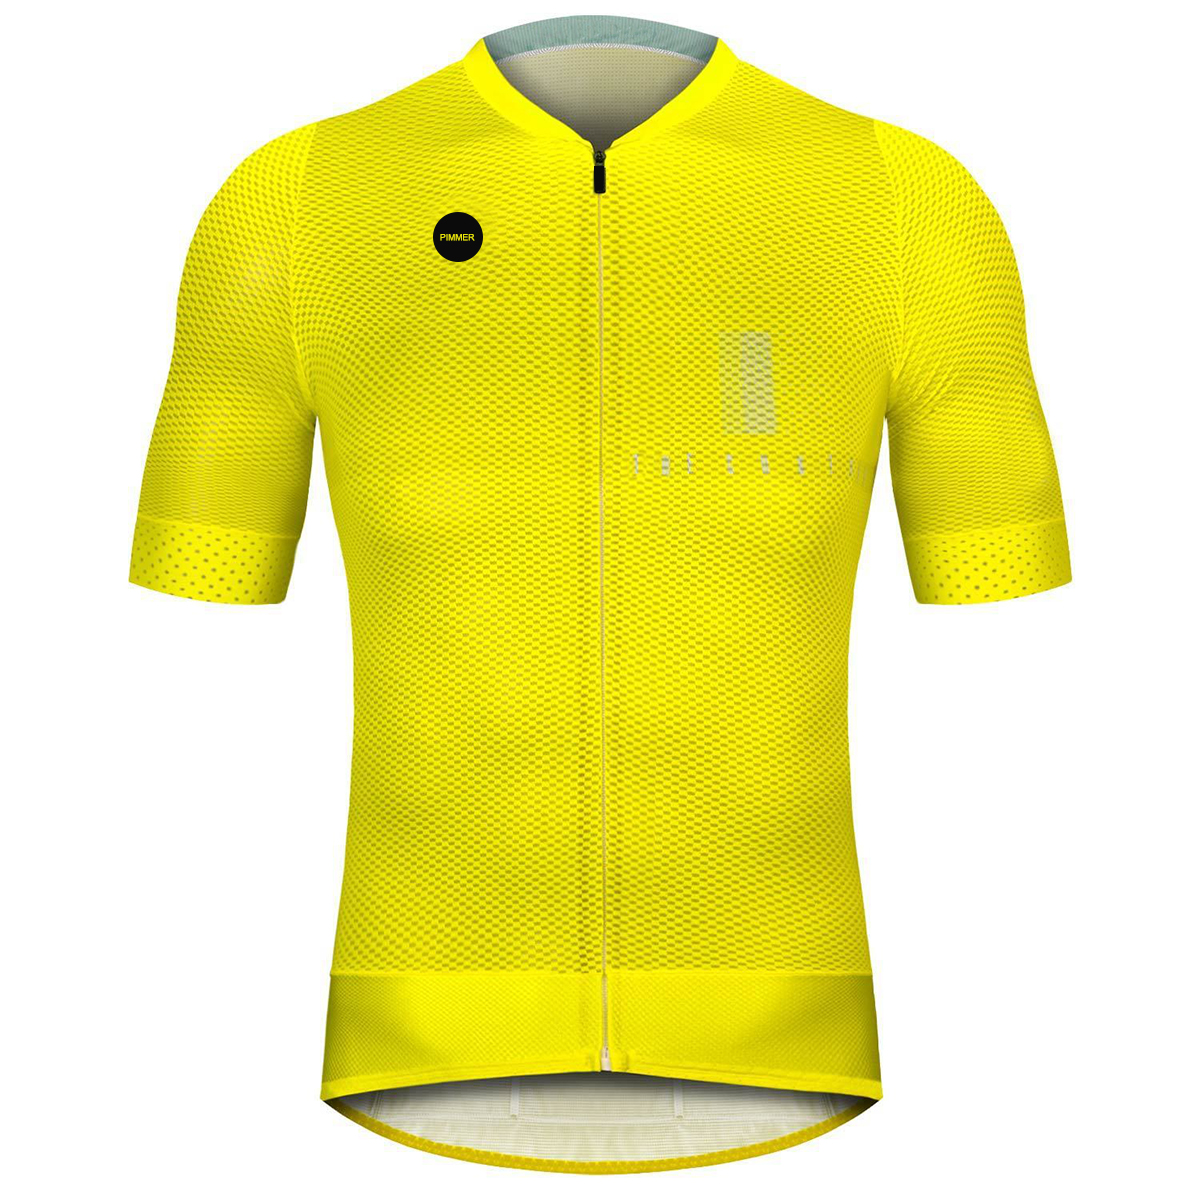 Pimmer Cycling-Jersey Short-Sleeve Italy-Fabric with Best-Quality